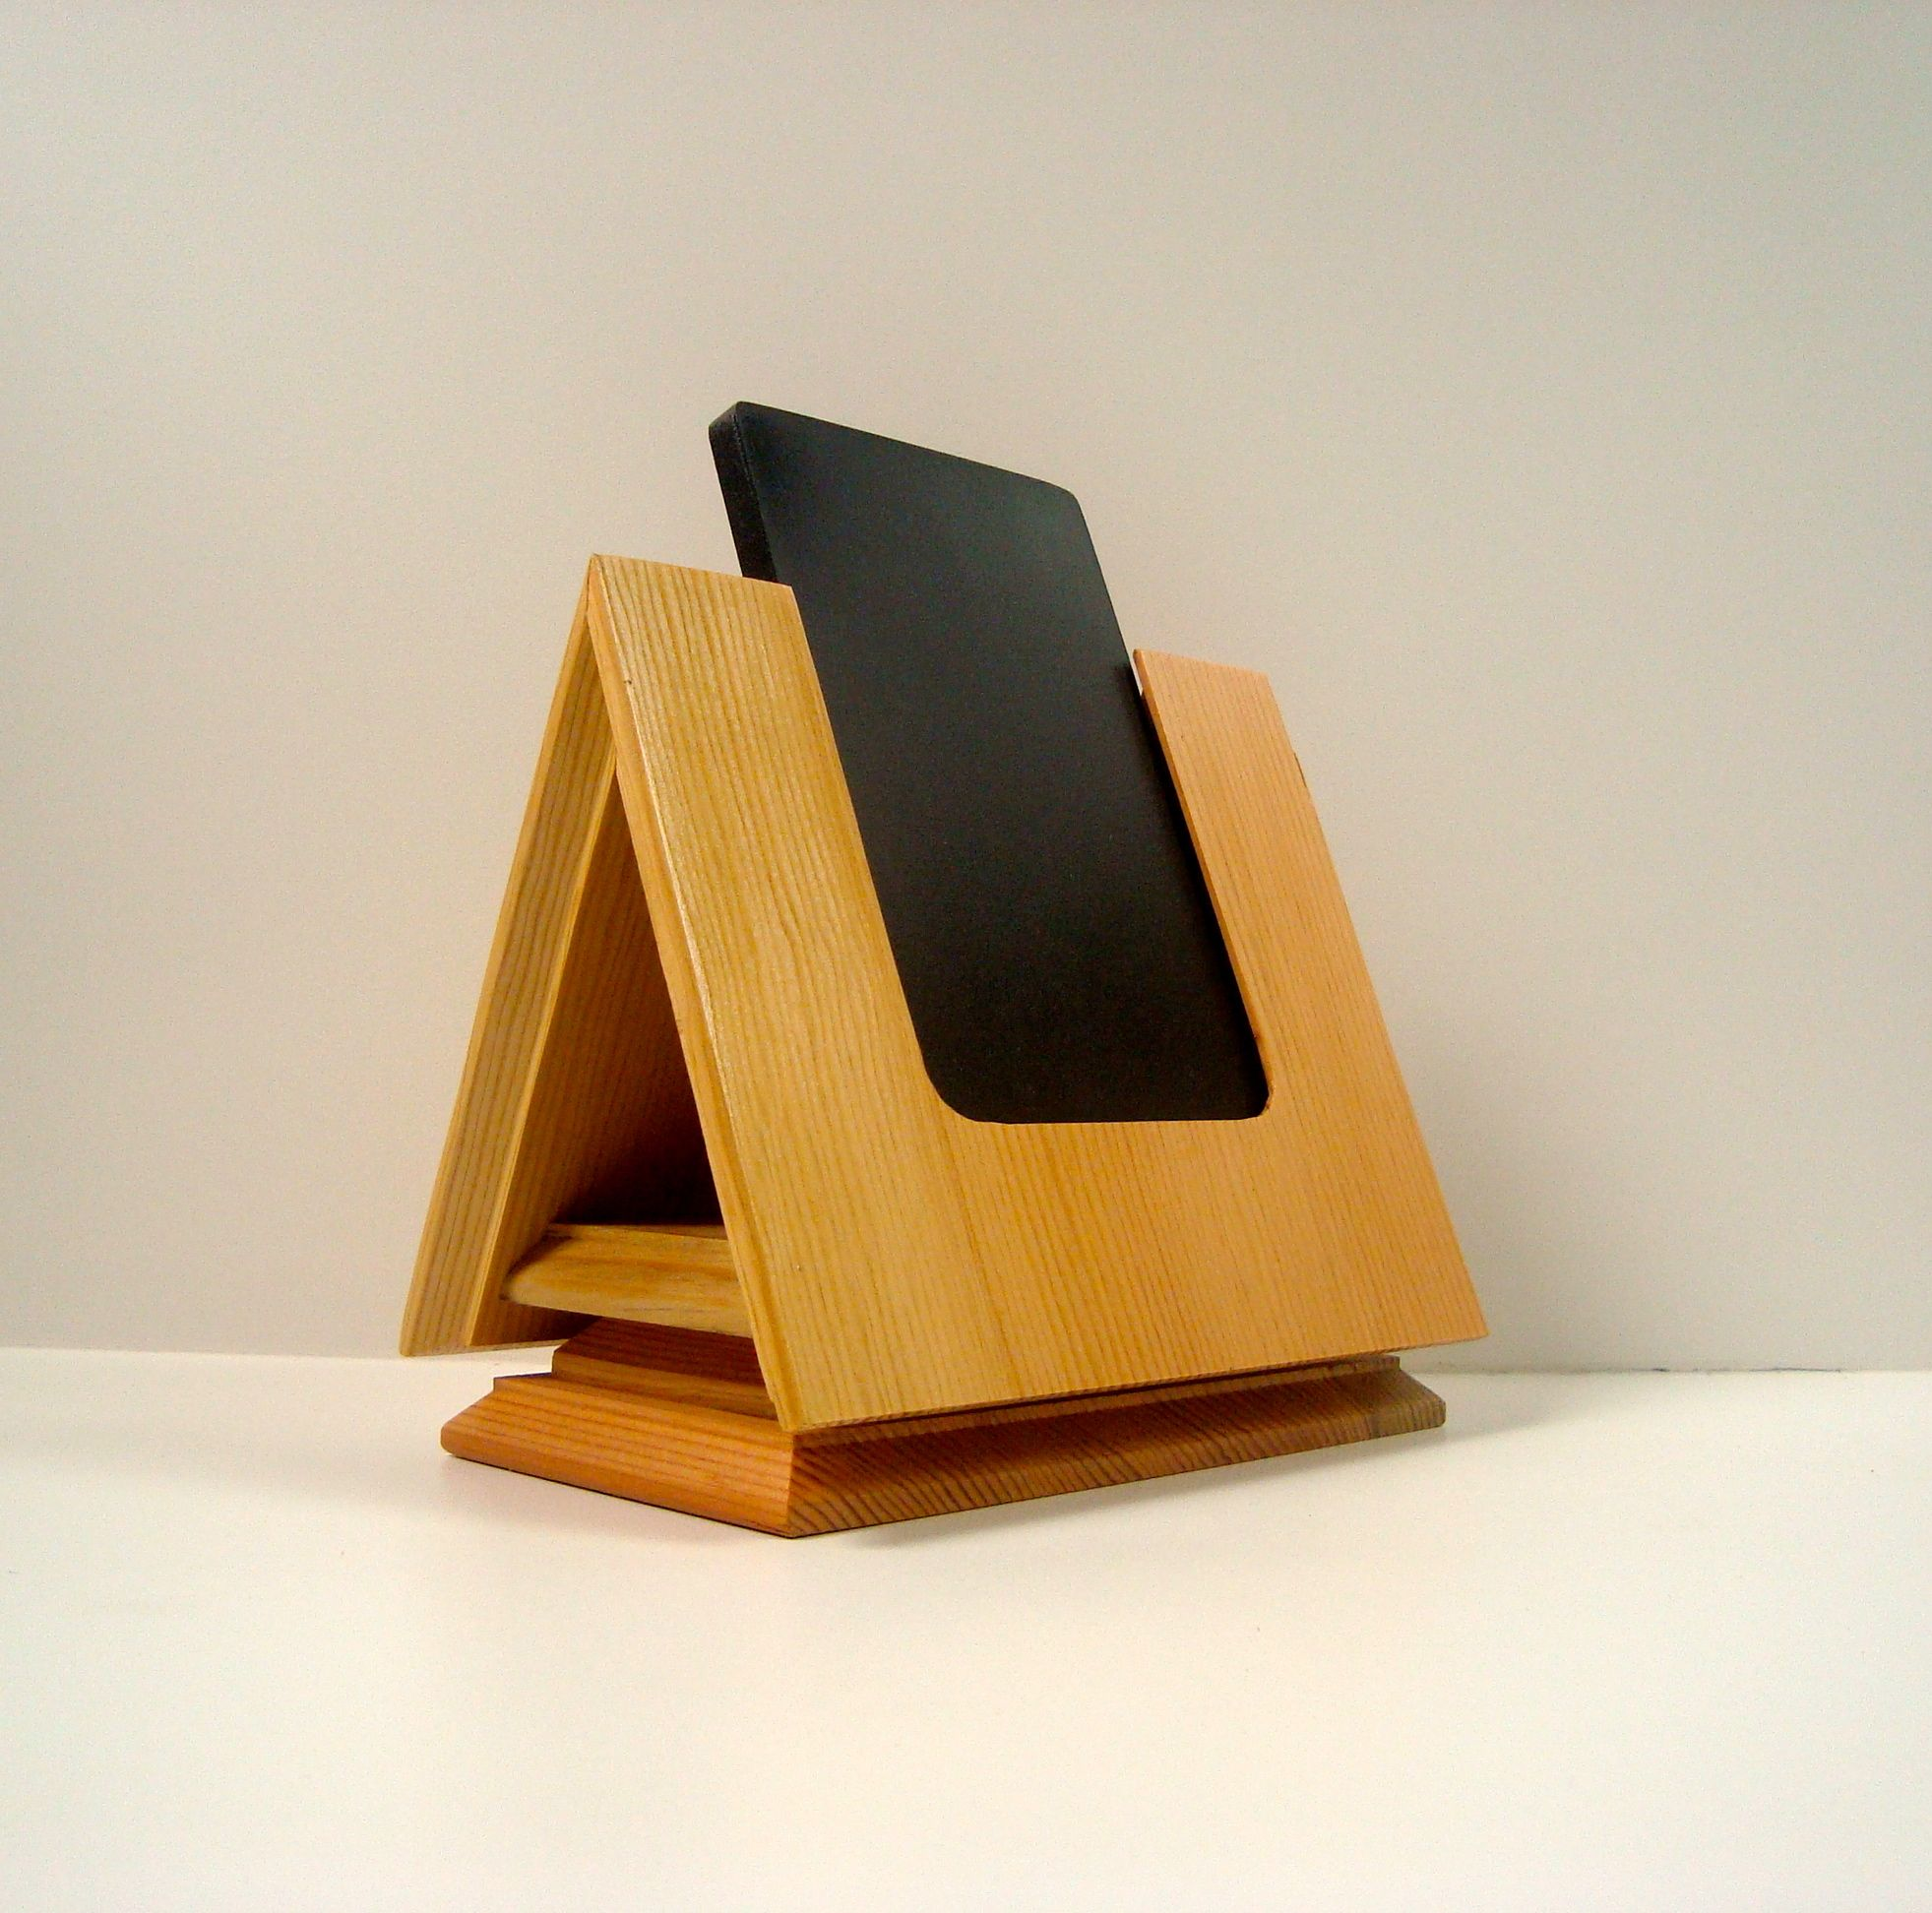 The Tabitat Stand For iPad Mini In Fir.